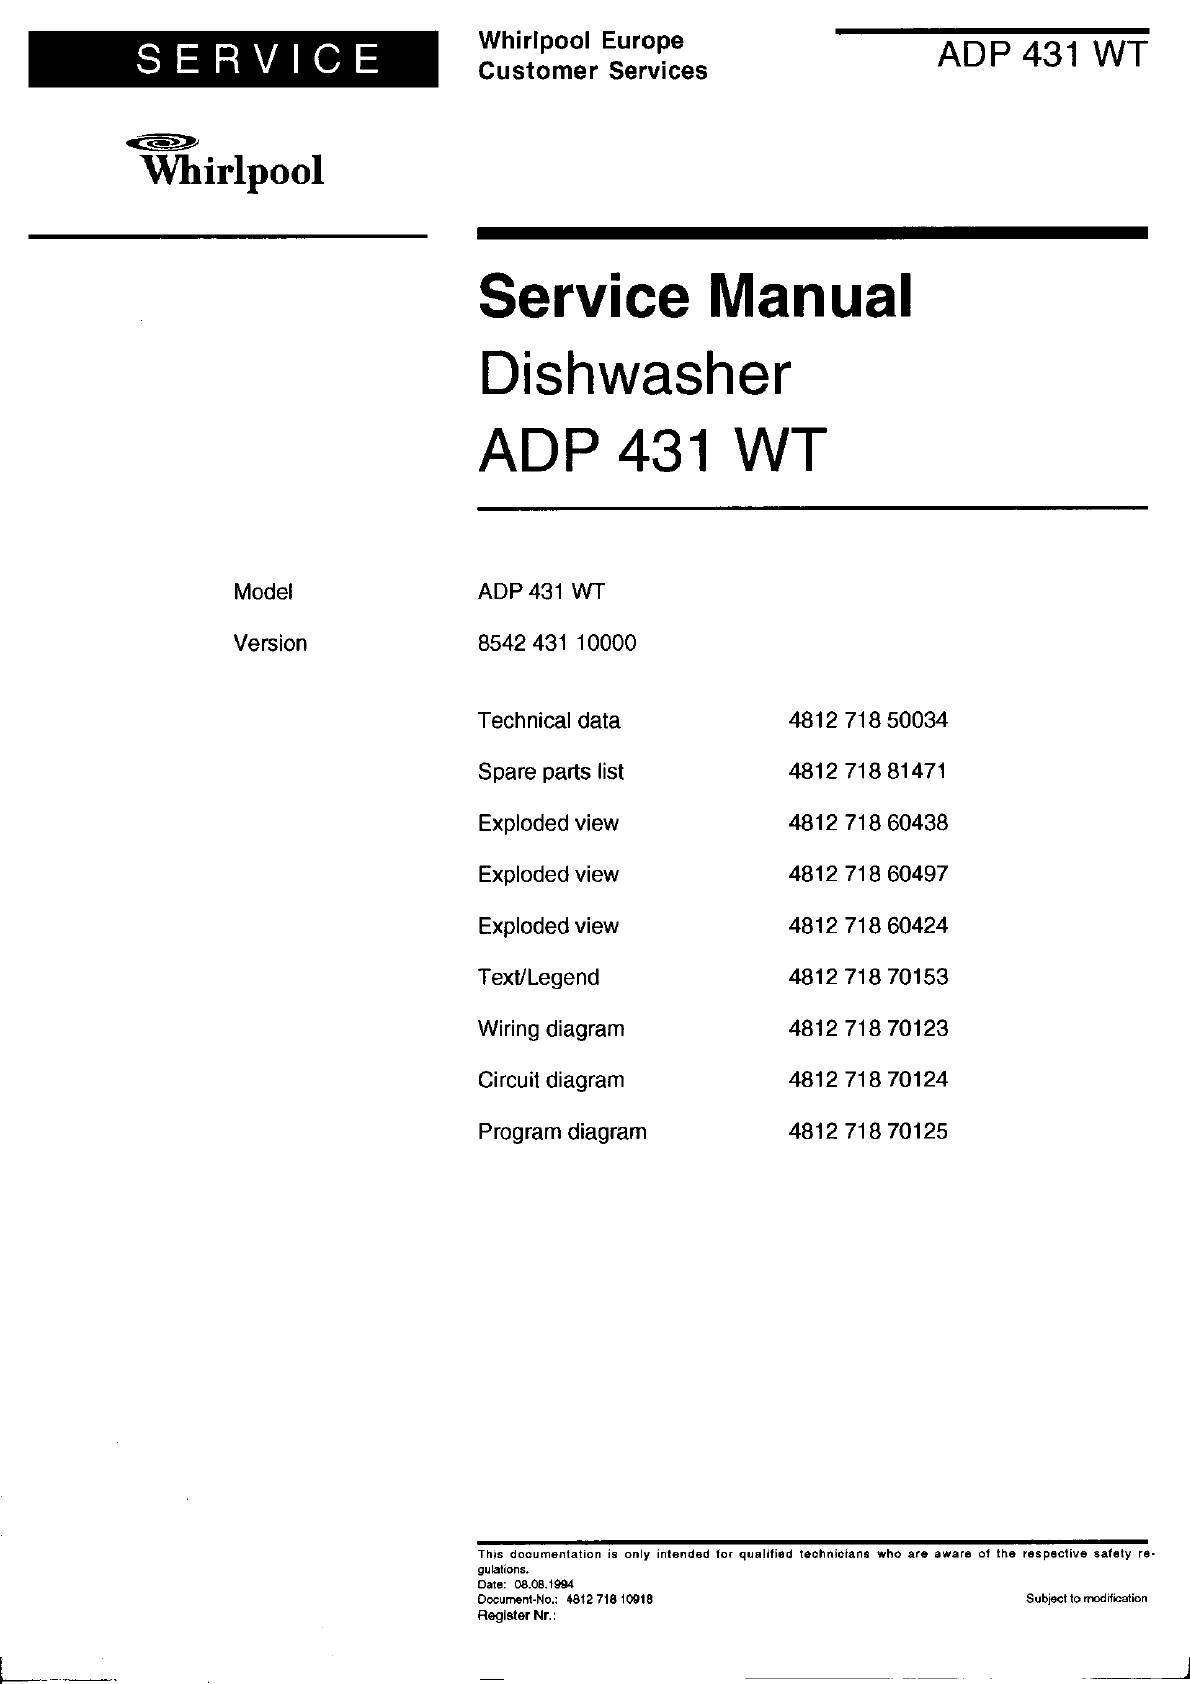 Whirlpool dishwasher 431 user guide - Whirlpool service client ...